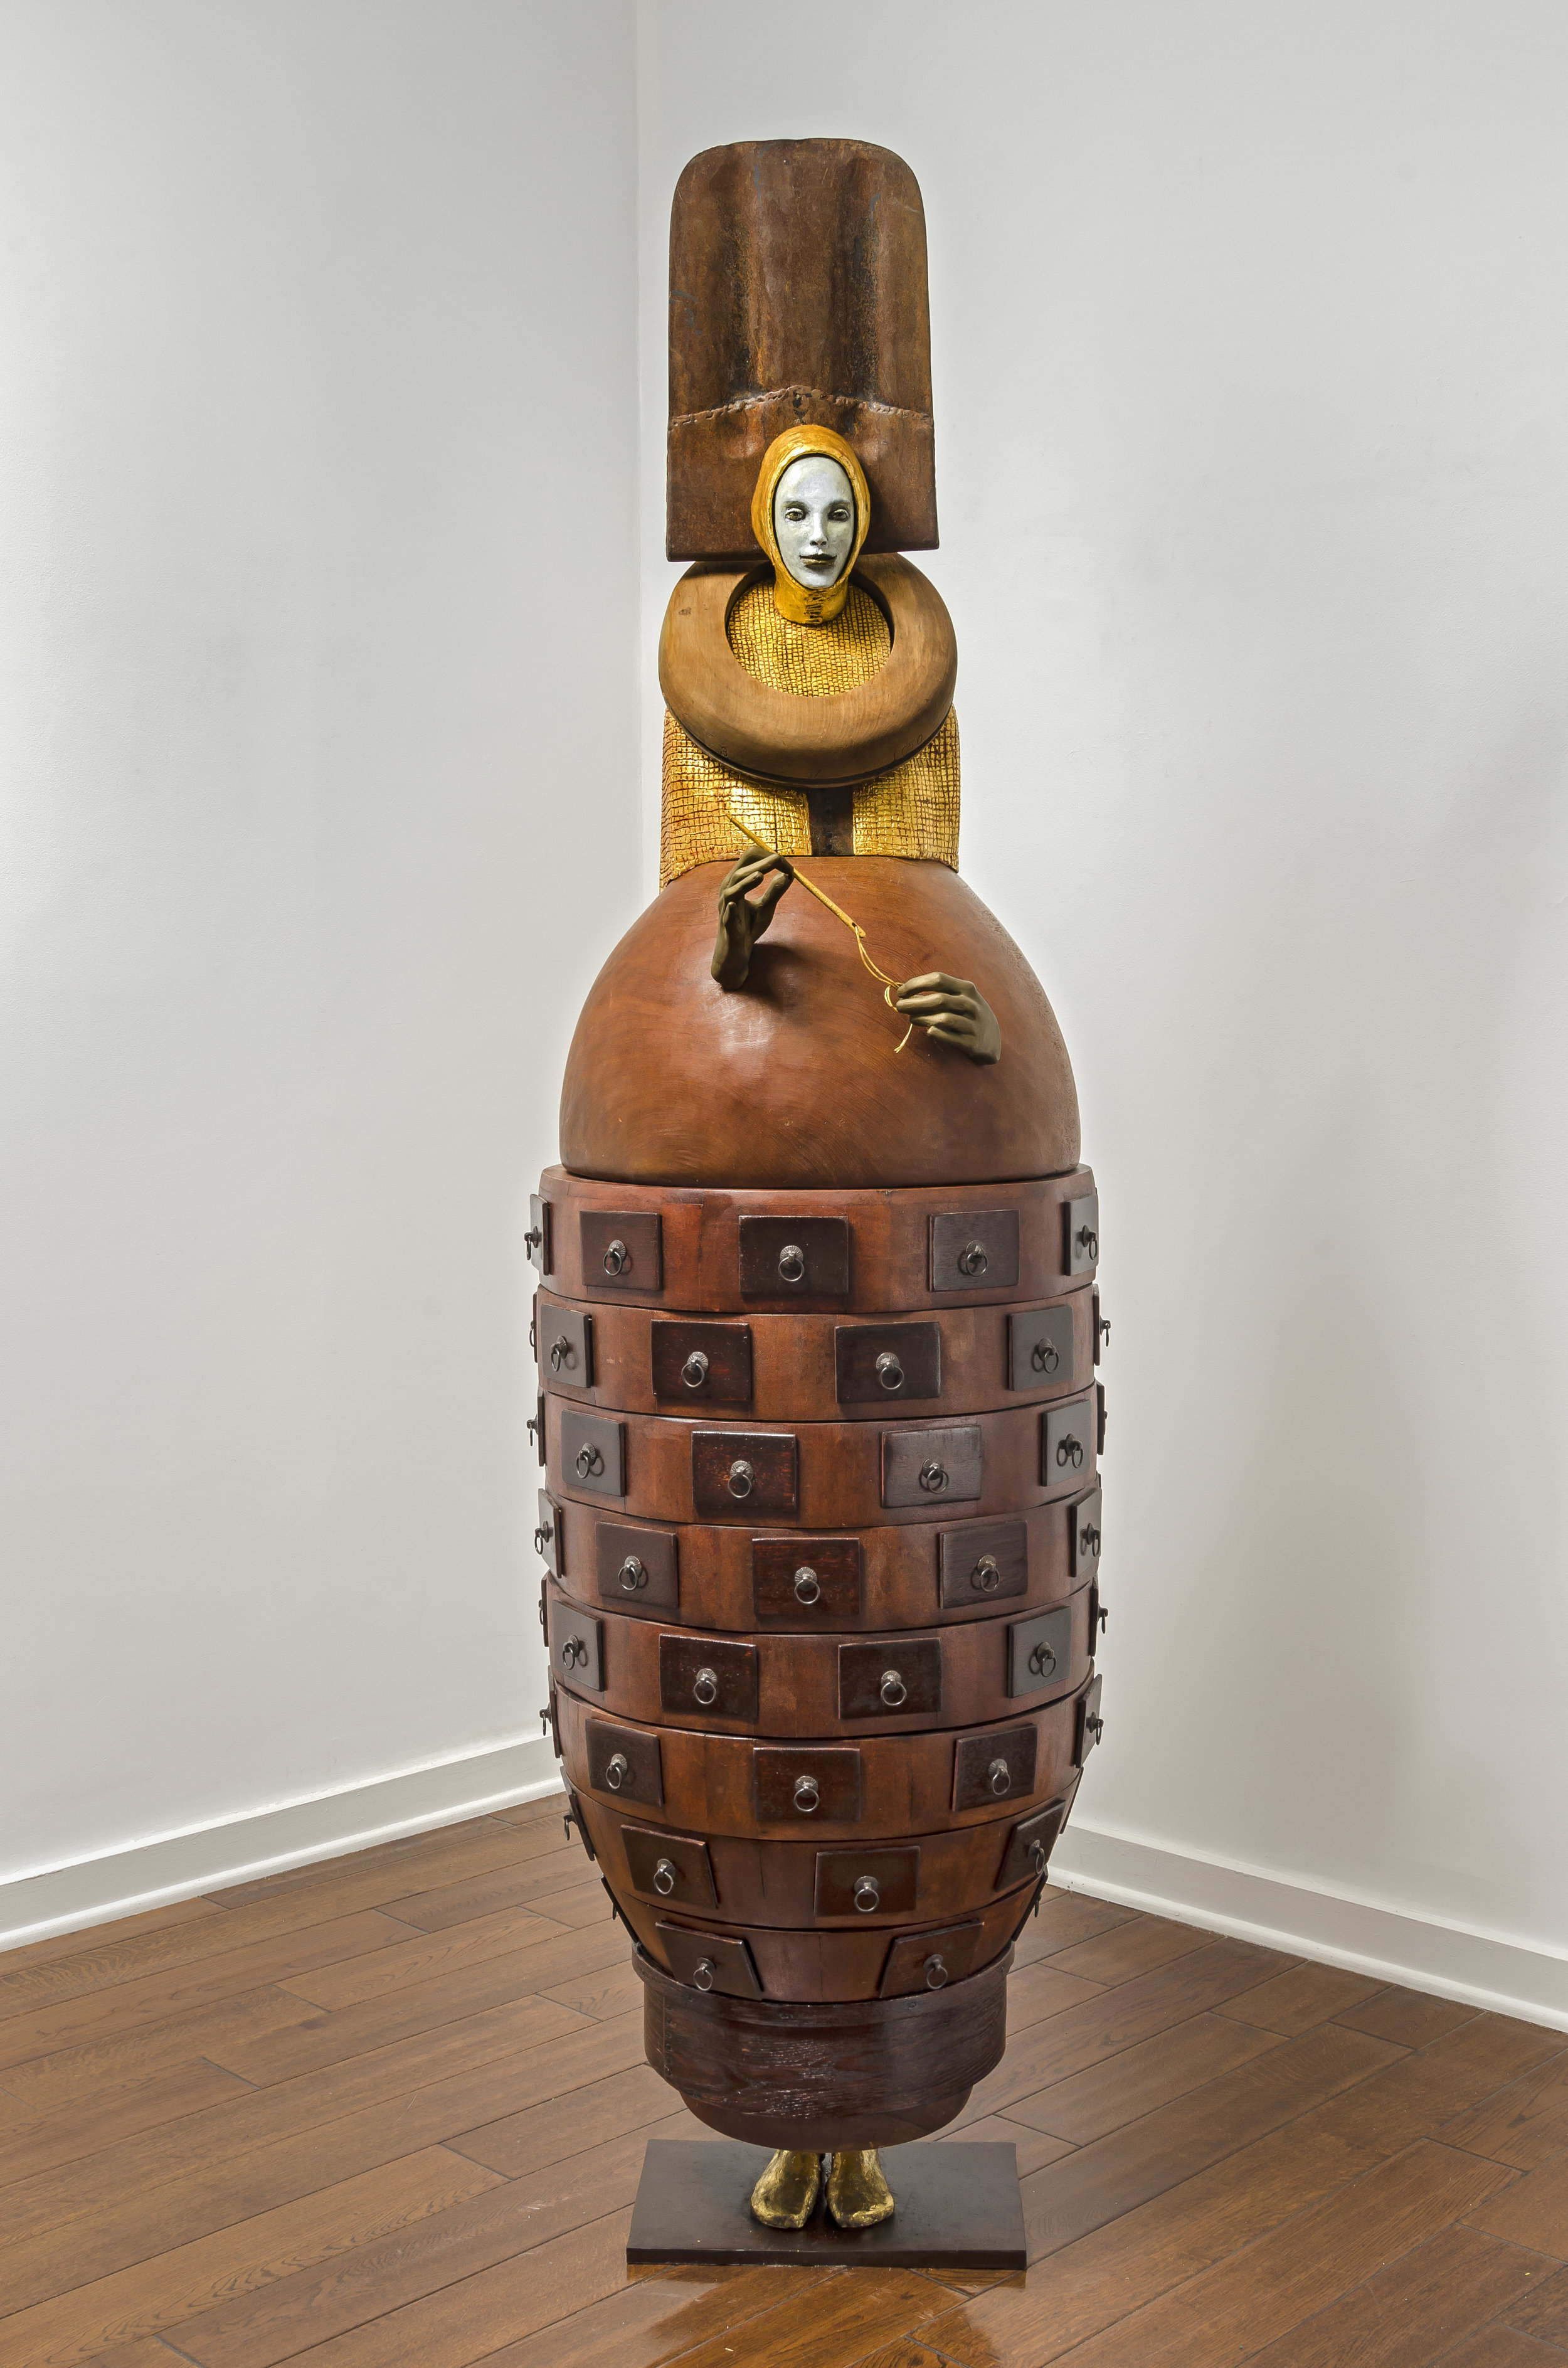 The Embroidery Lesson , 2007/2019 wood and bronze 80 x 20 x 22 inches; 203.2 x 50.8 x 55.9 centimeters